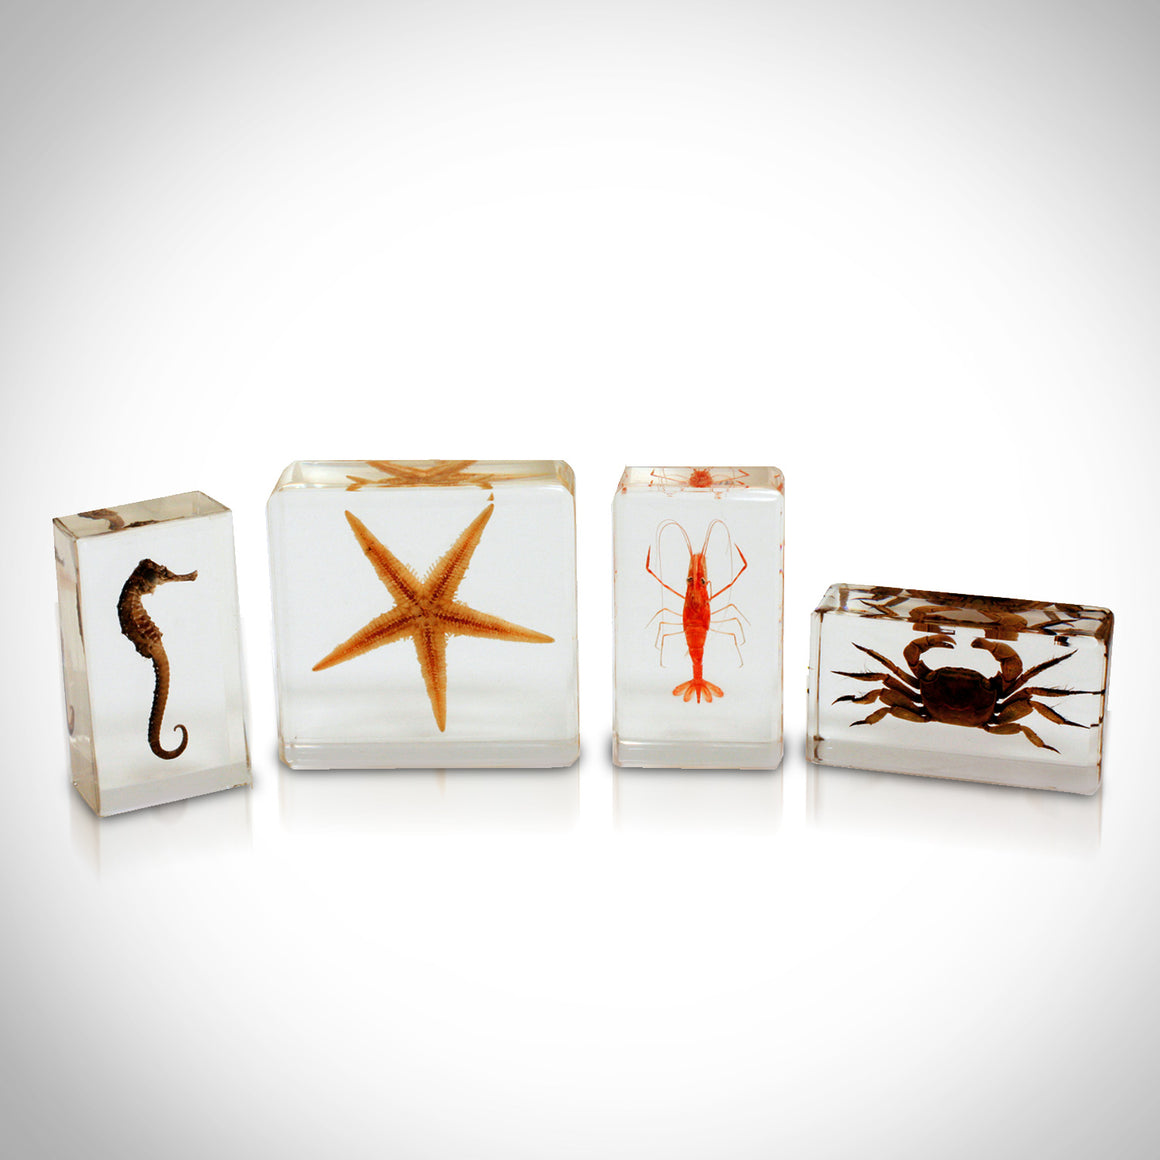 4 SEA LIFE SPECIES IN CUSTOM RESIN DISPLAYS